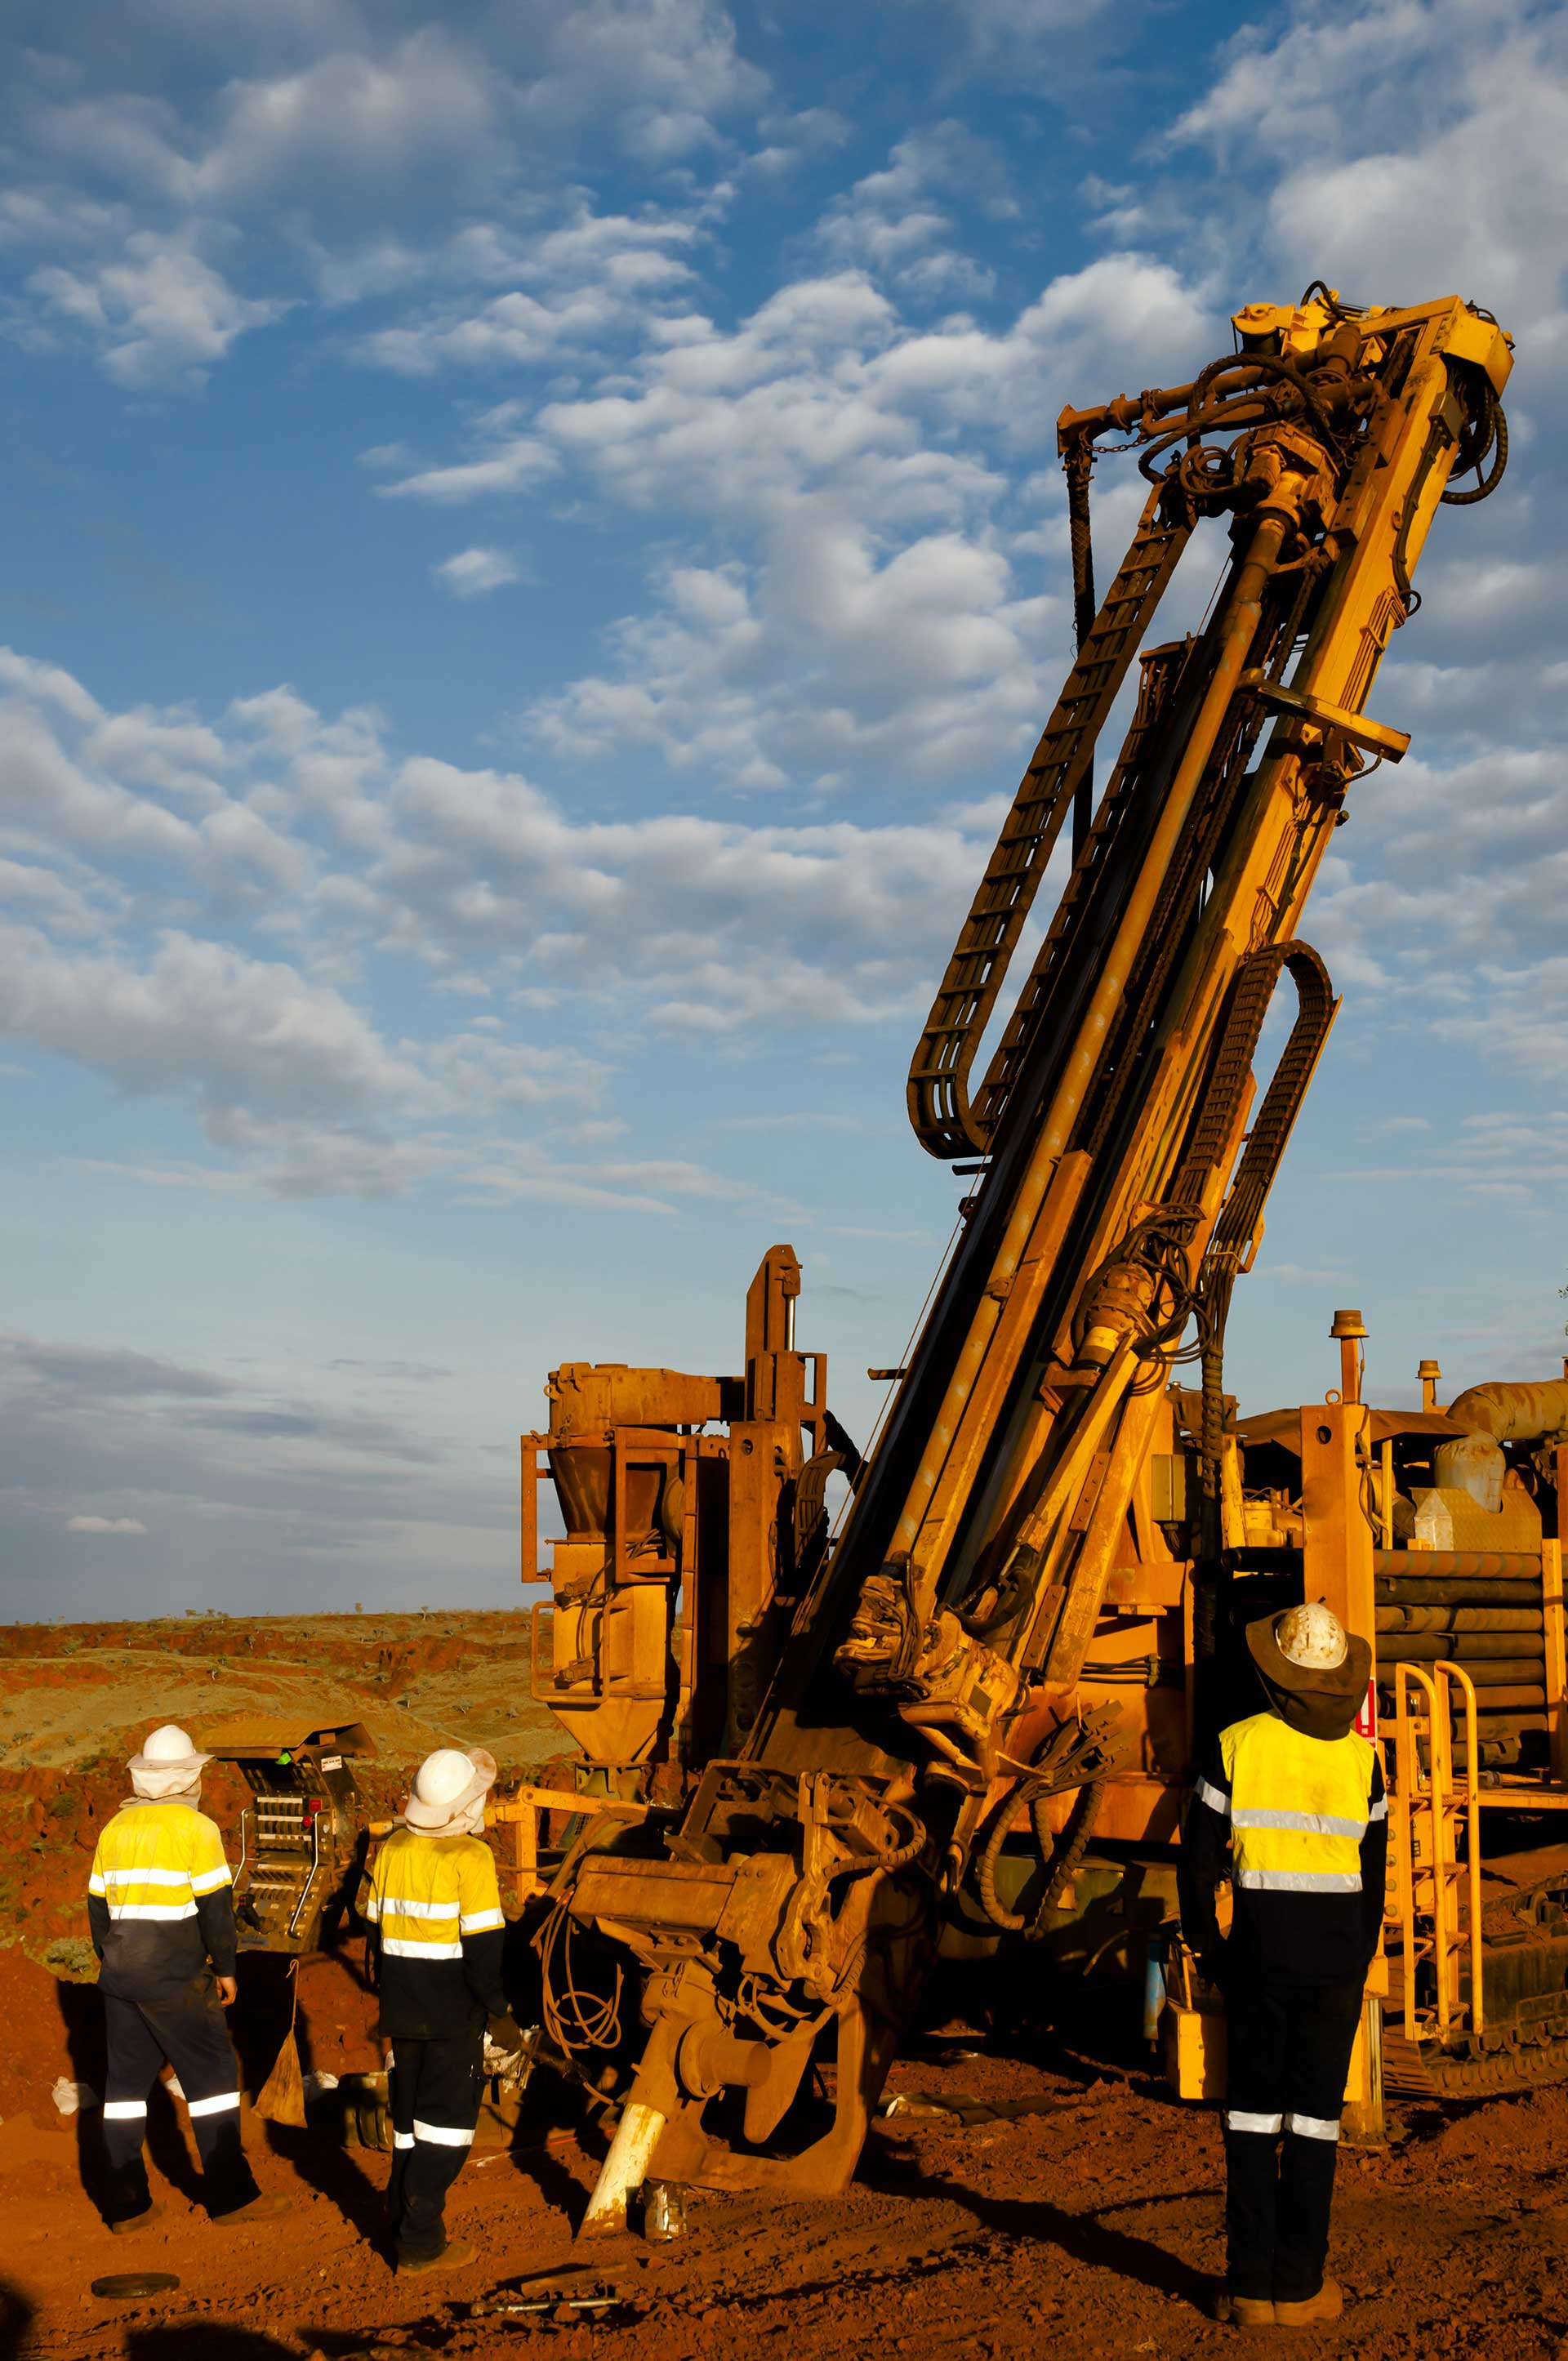 San Marco to Prepare for Drilling at it's Gold/Silver/Zinc Buck Property and Announces Attendance at VRIC Conference